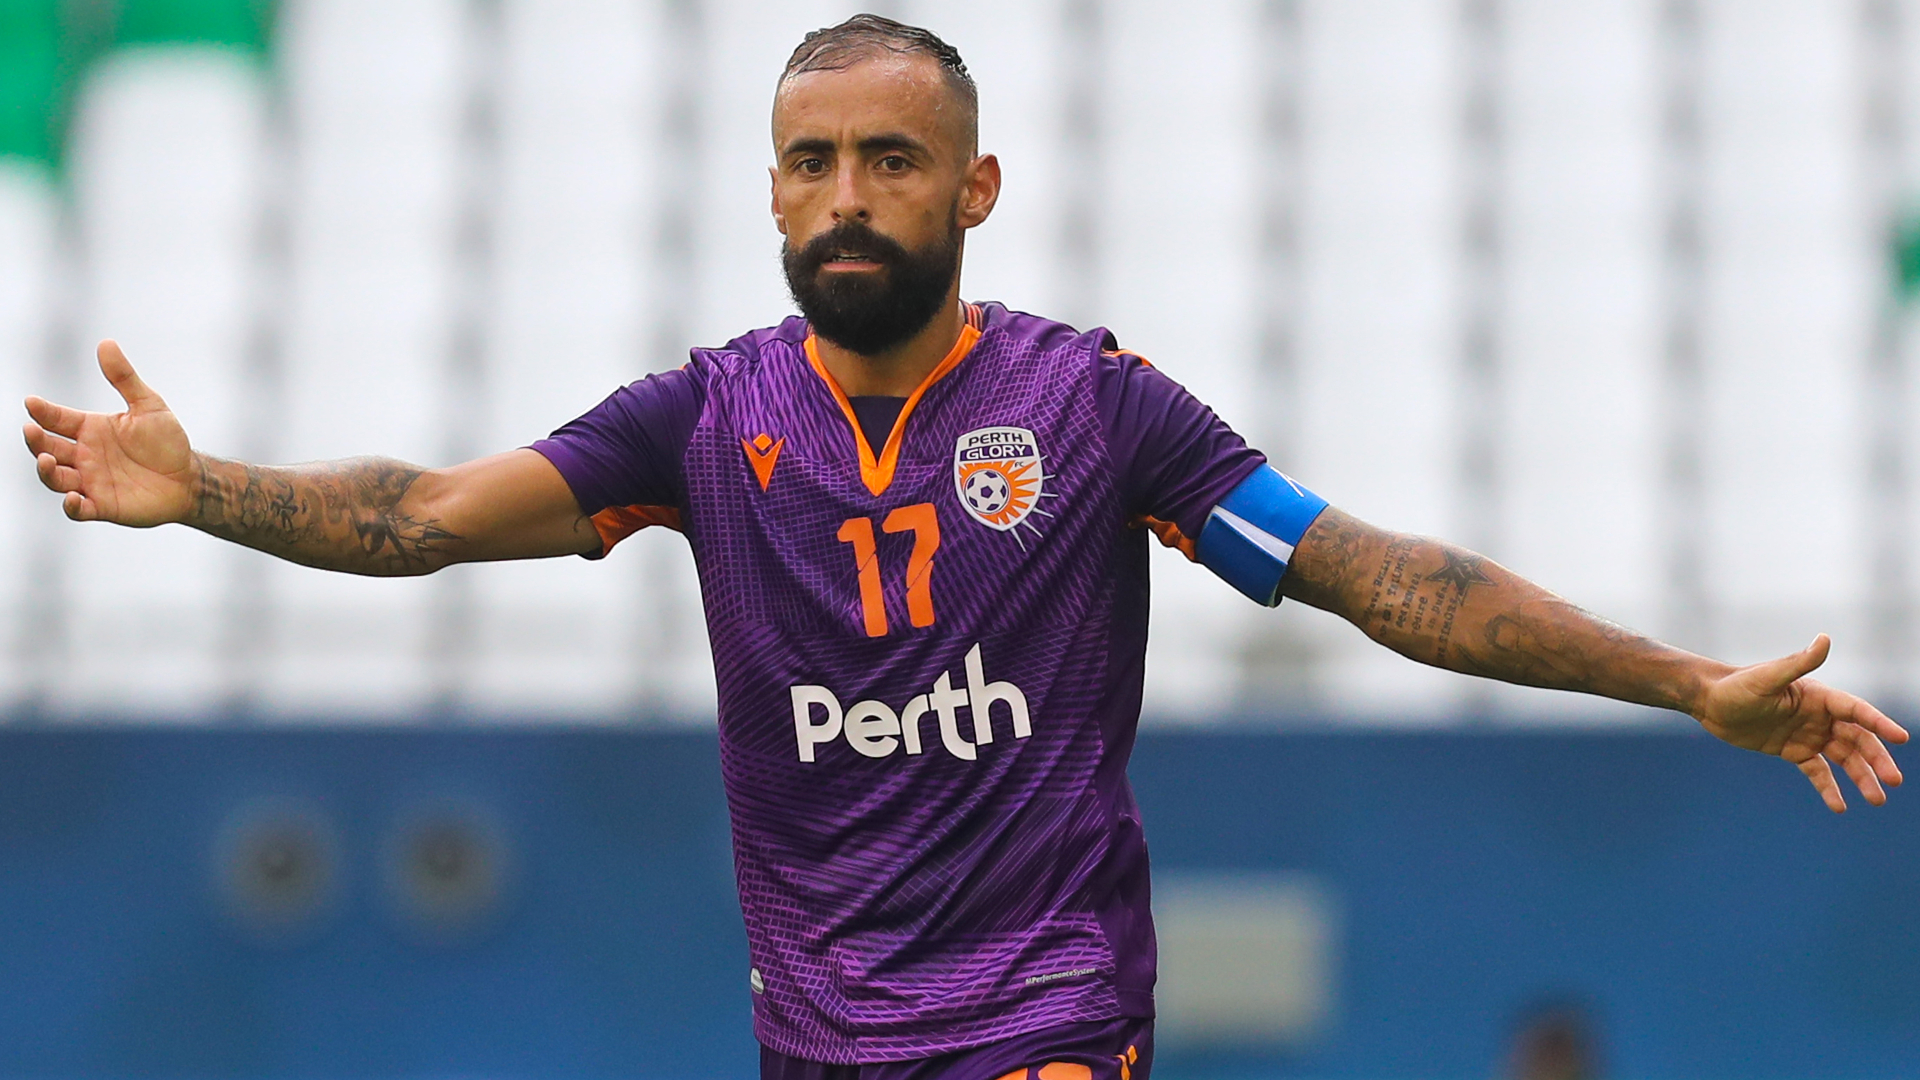 Perth Glory playing for pride against Shanghai Shenhua in the Asian Champions League